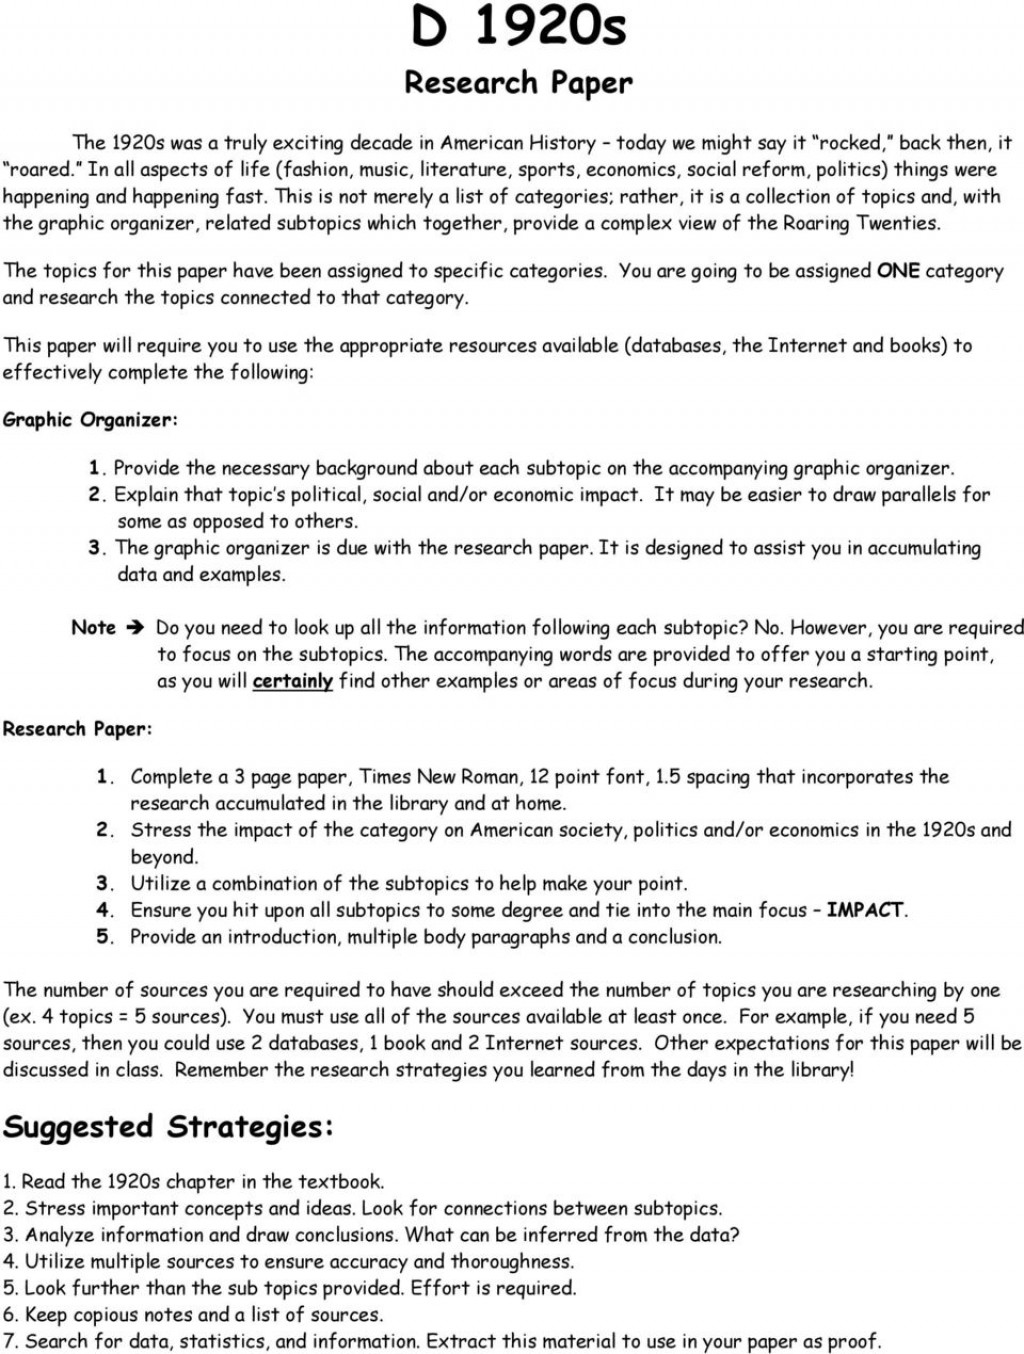 024 Page 1 American Literature History Research Paper Surprising Topics Large